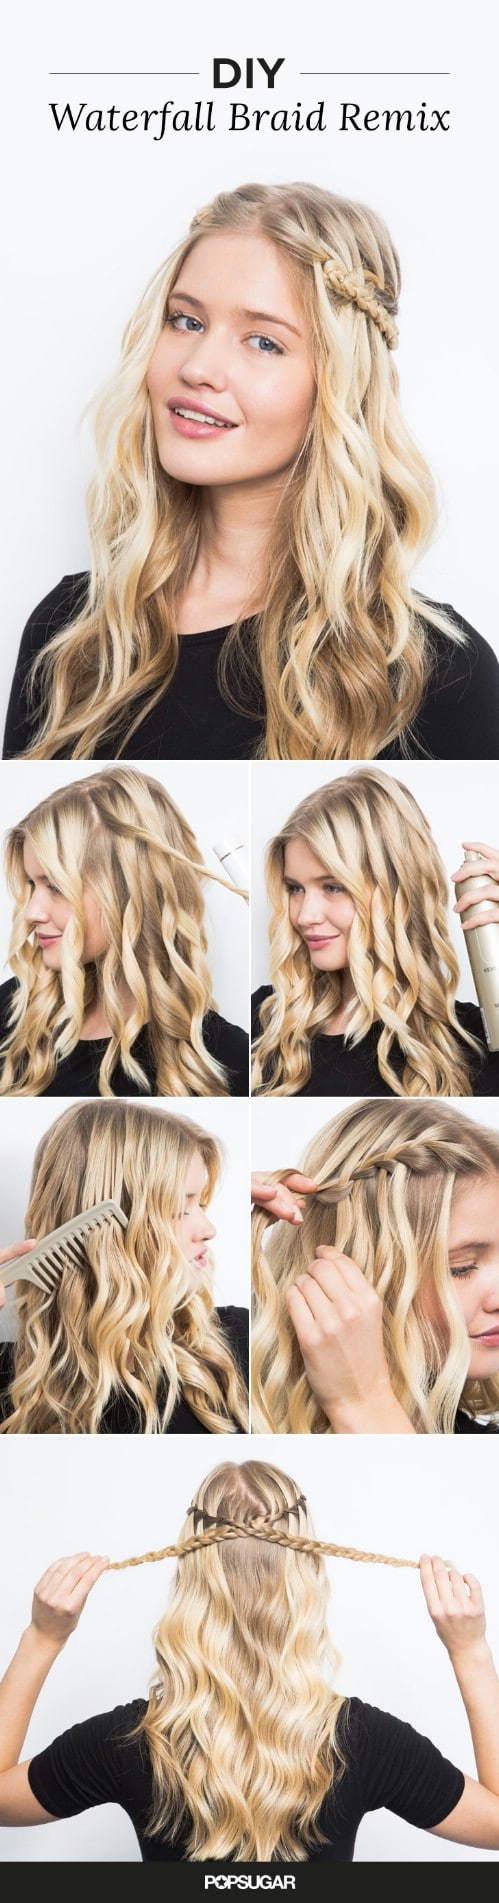 17 wonderful waterfall braid tutorials for your luscious locks diy criss cross waterfall ccuart Image collections